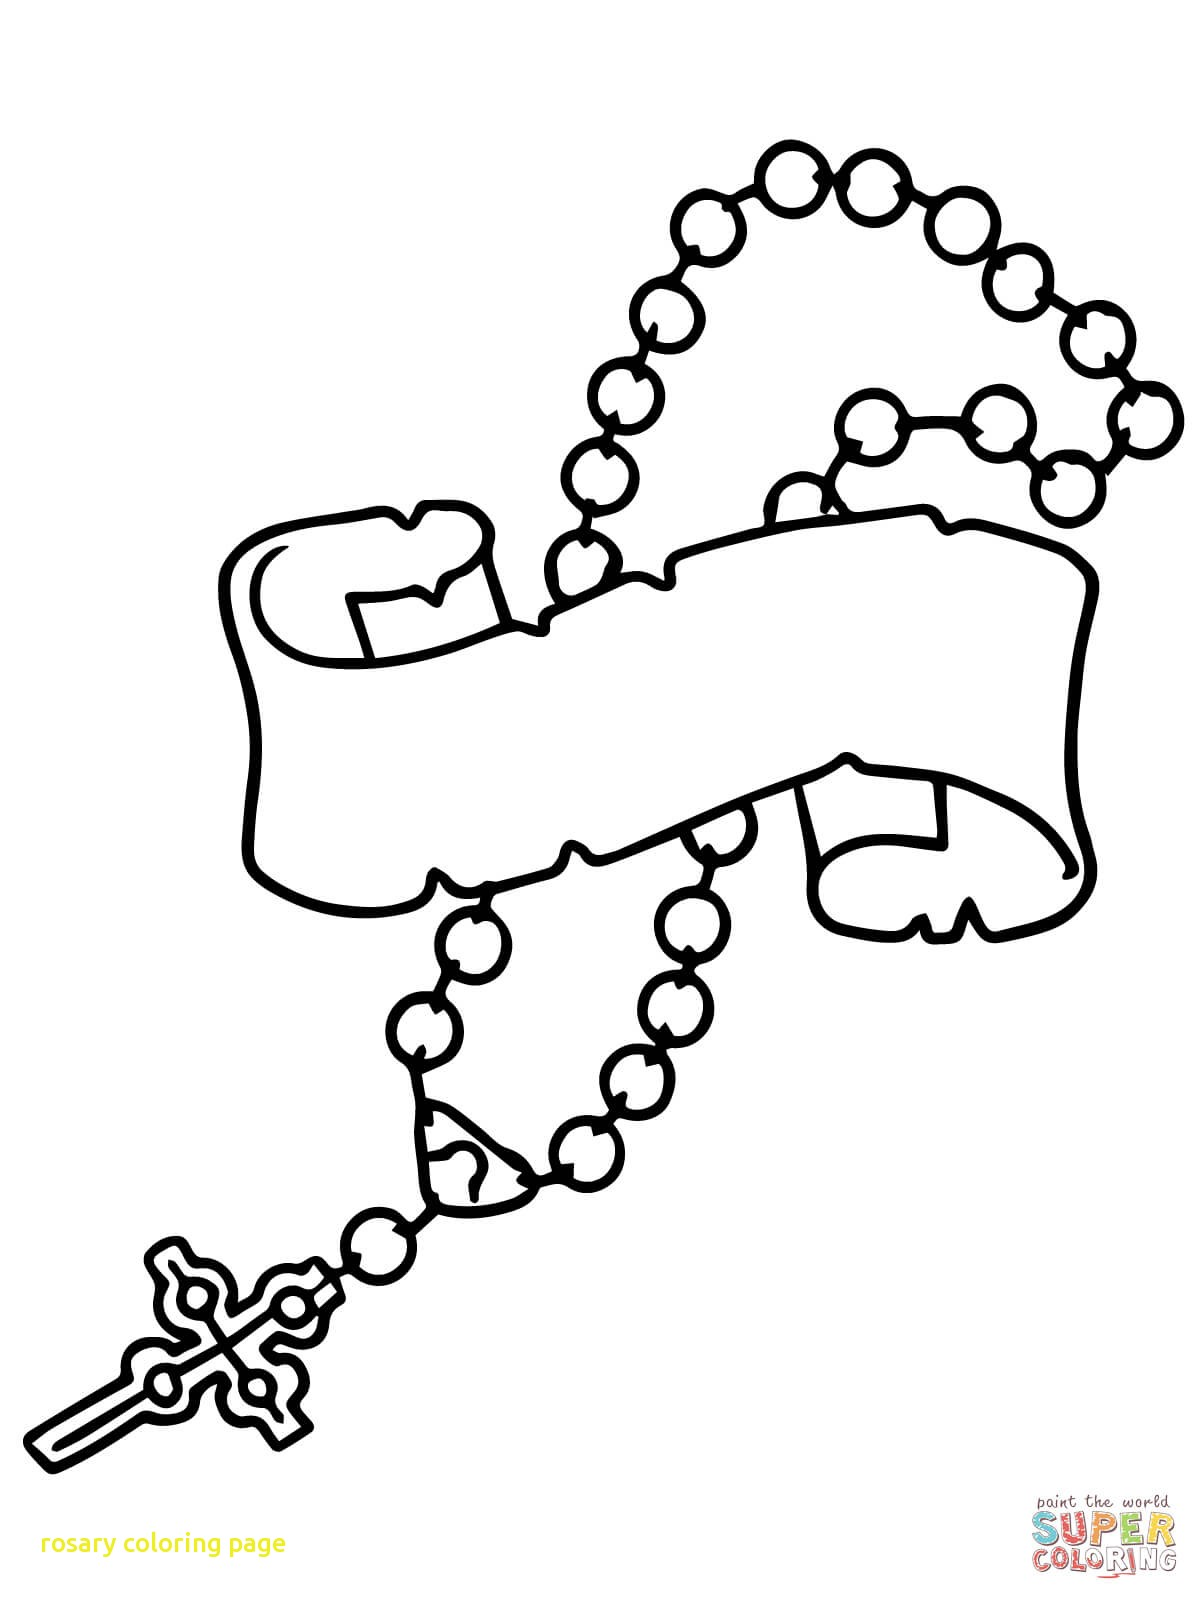 Rosaries Drawing At Getdrawings